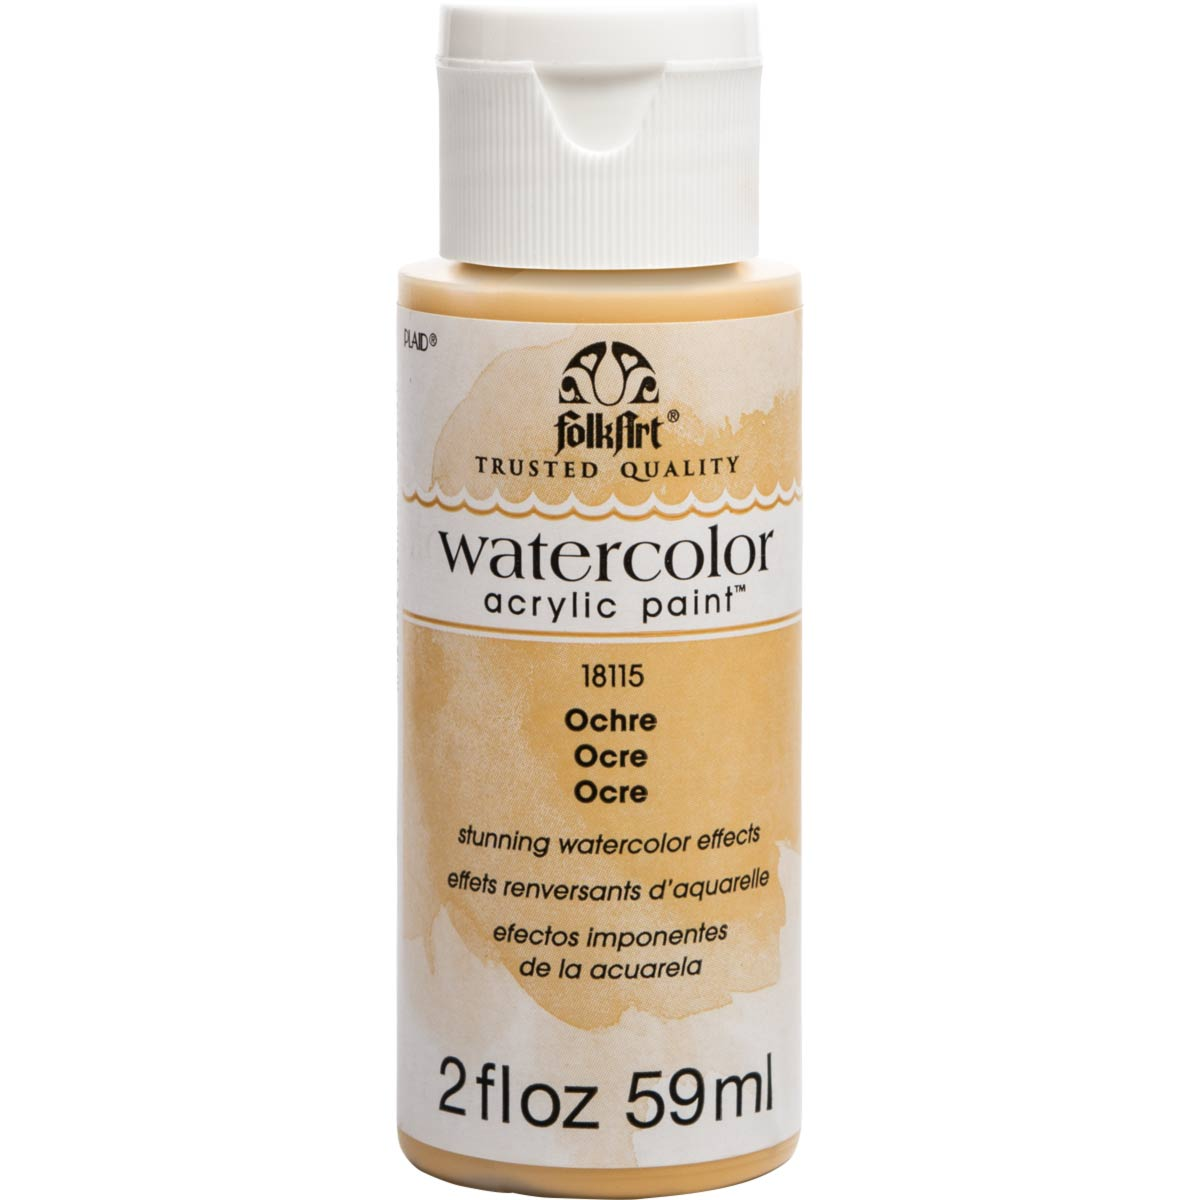 FolkArt ® Watercolor Acrylic Paint™ - Ochre, 2 oz.